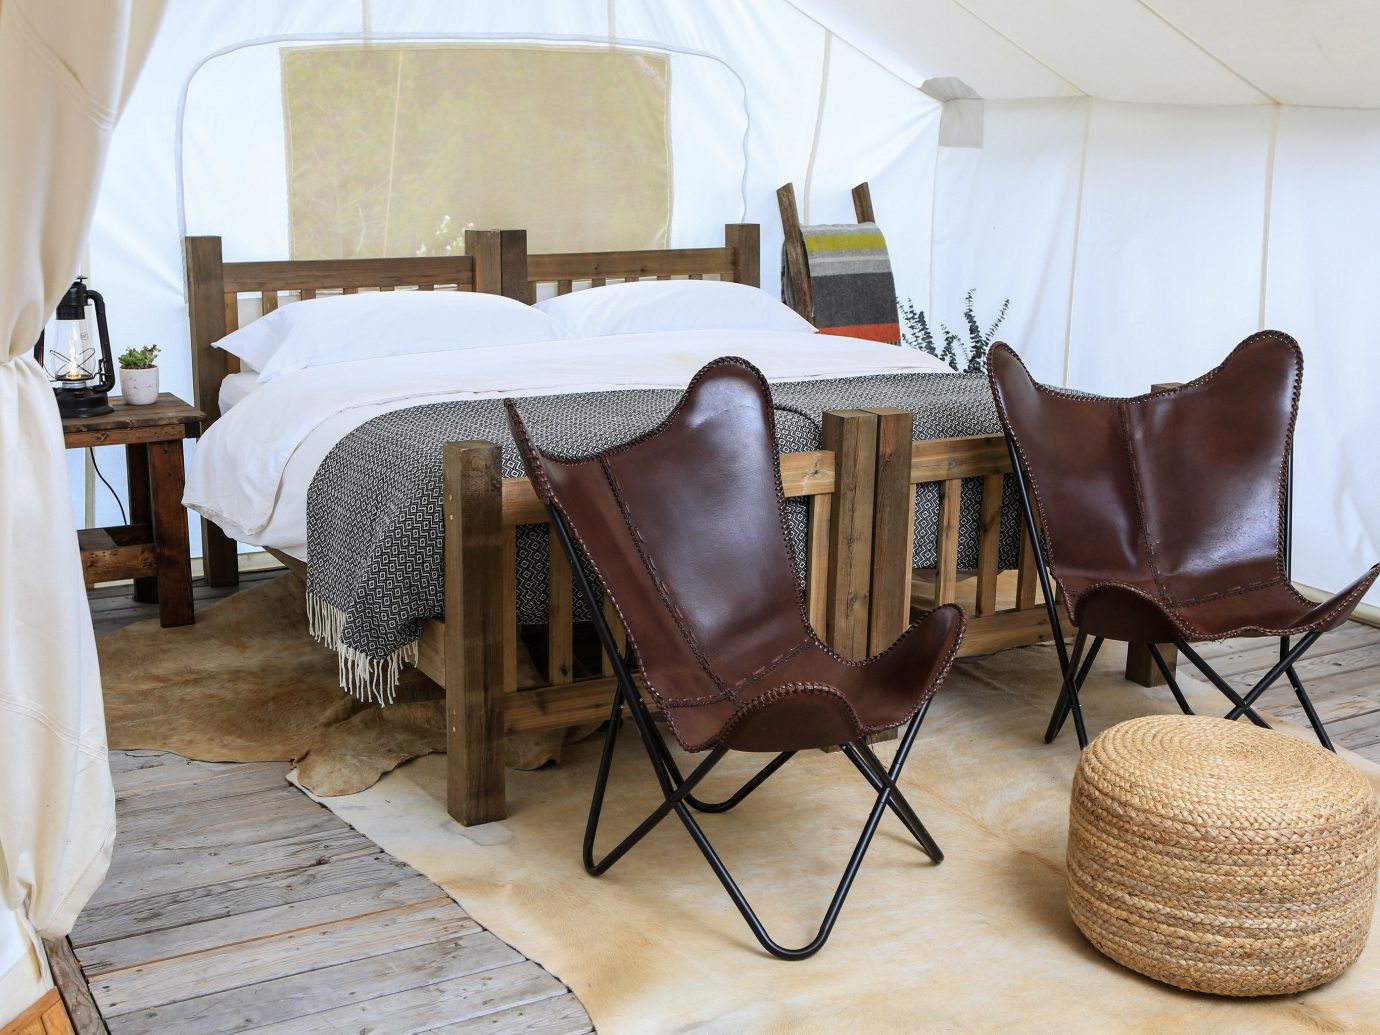 Glamping Hotels Outdoors + Adventure Trip Ideas indoor floor wall chair room property Living furniture living room interior design home table cottage Suite wood Villa estate bed